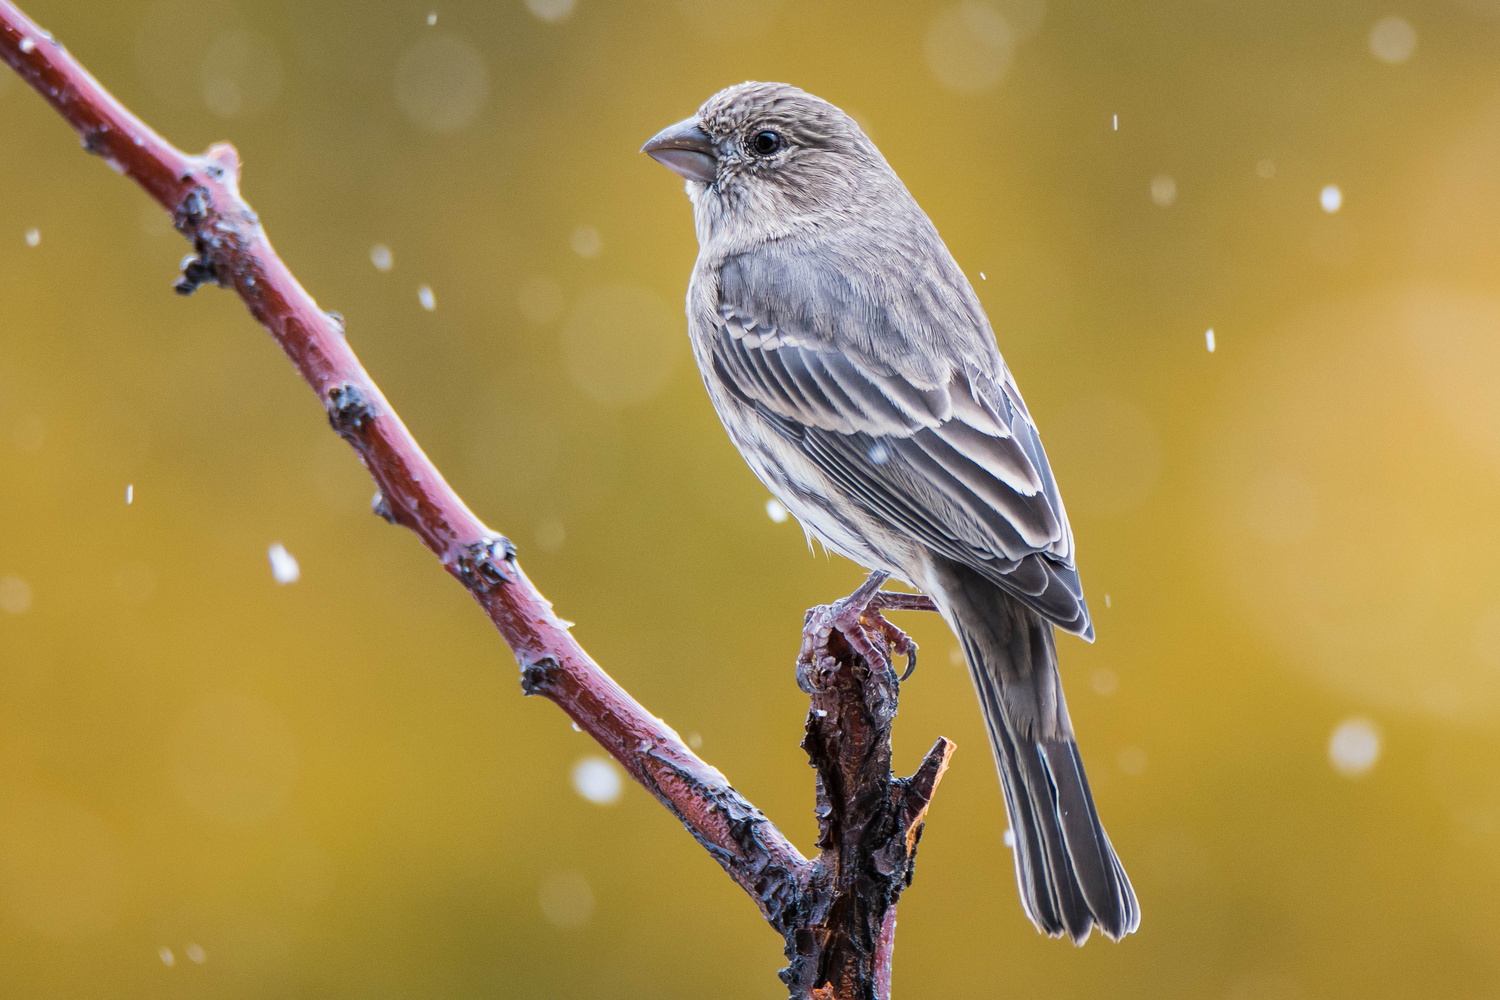 Finch's First Snow by Rick Wieseler